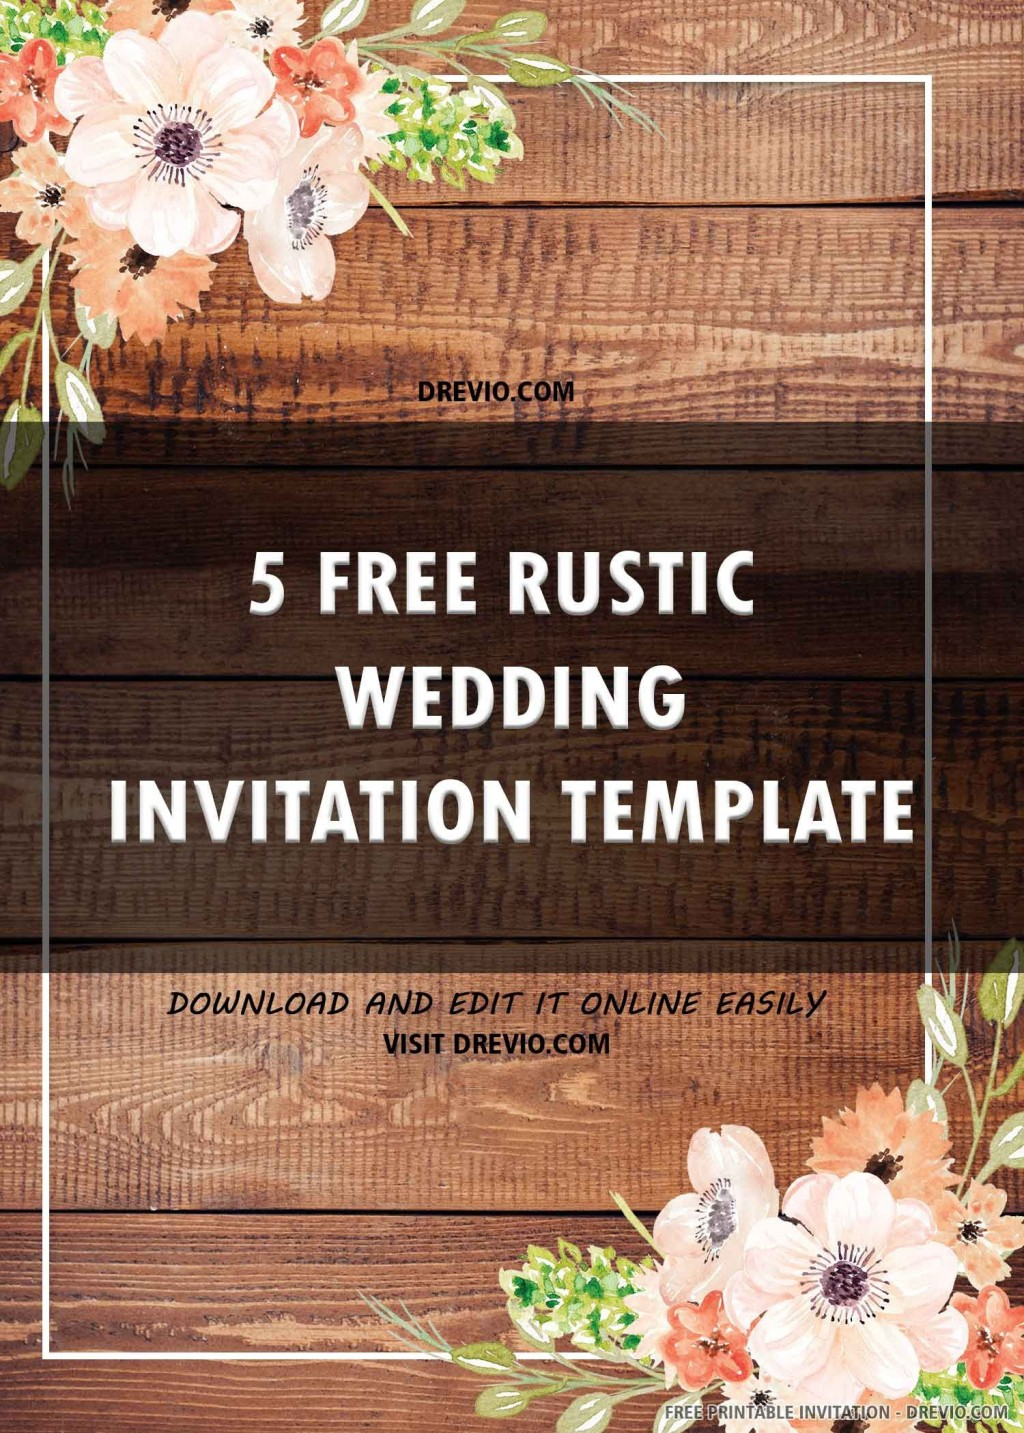 009 Impressive Rustic Wedding Invitation Template Example  Templates Free For Word Maker PhotoshopLarge